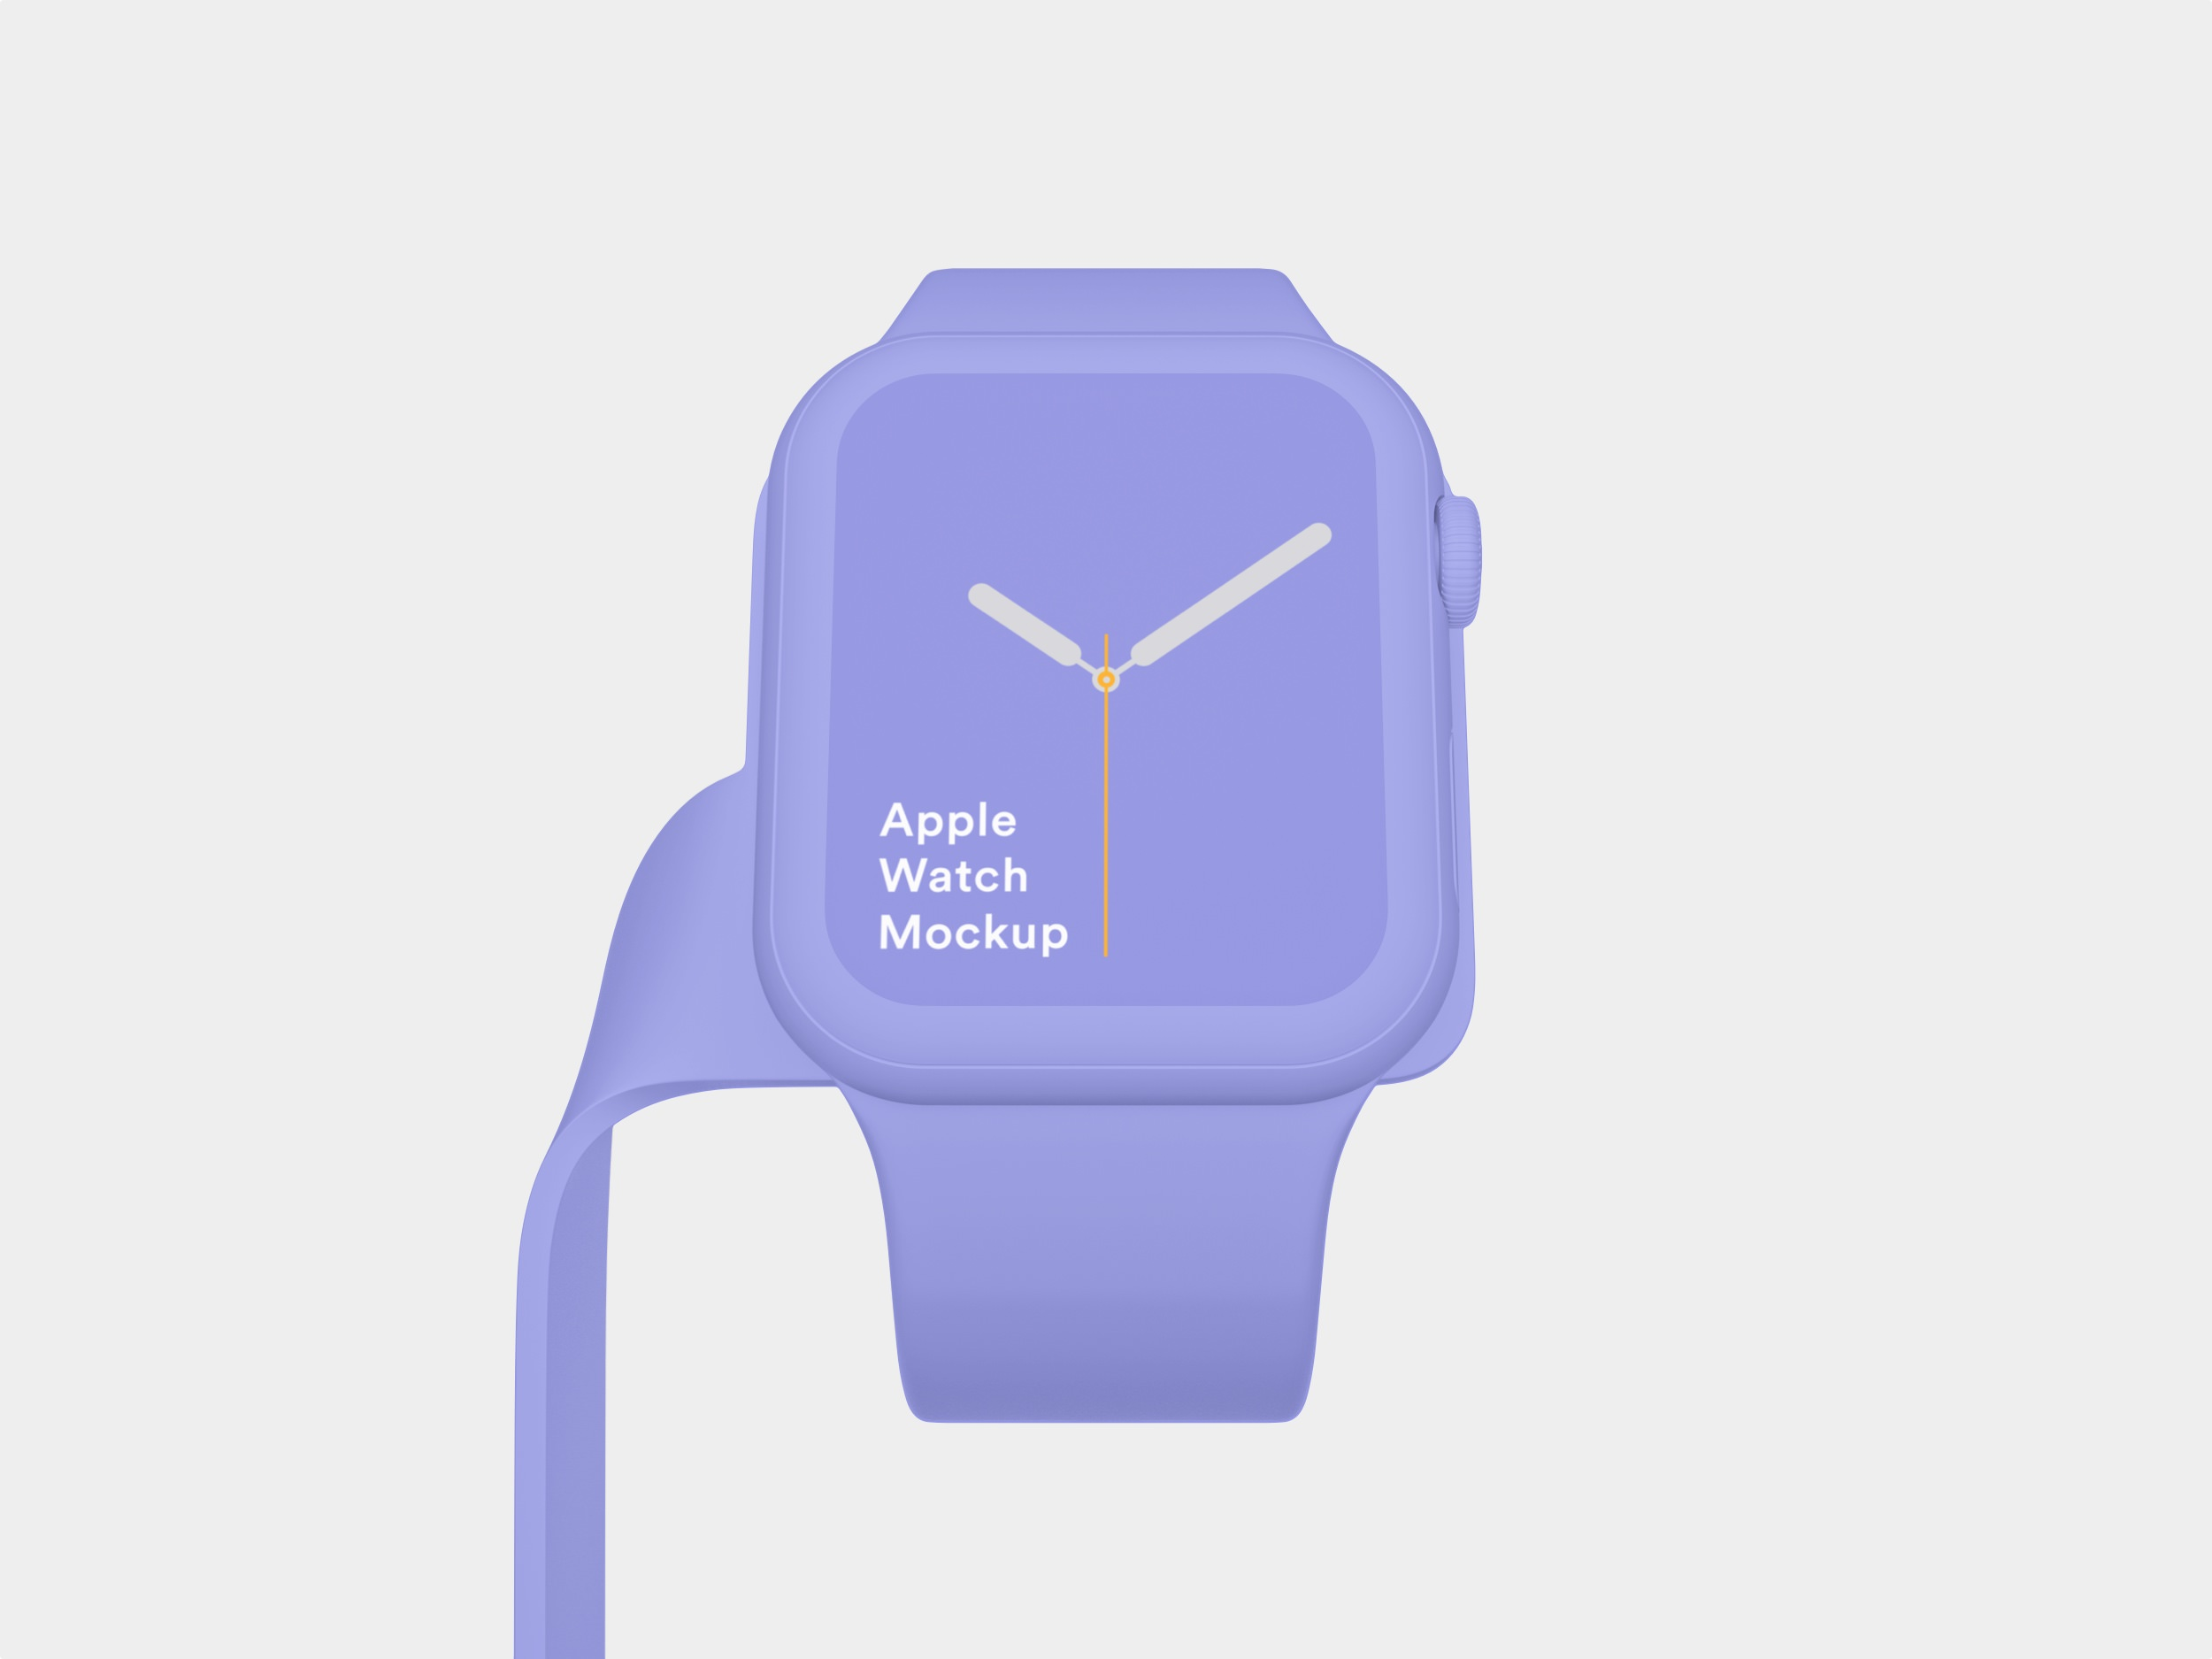 Highest quality, high resolution Apple Watch 4 Mockups for Sketch, Photoshop, Figma.